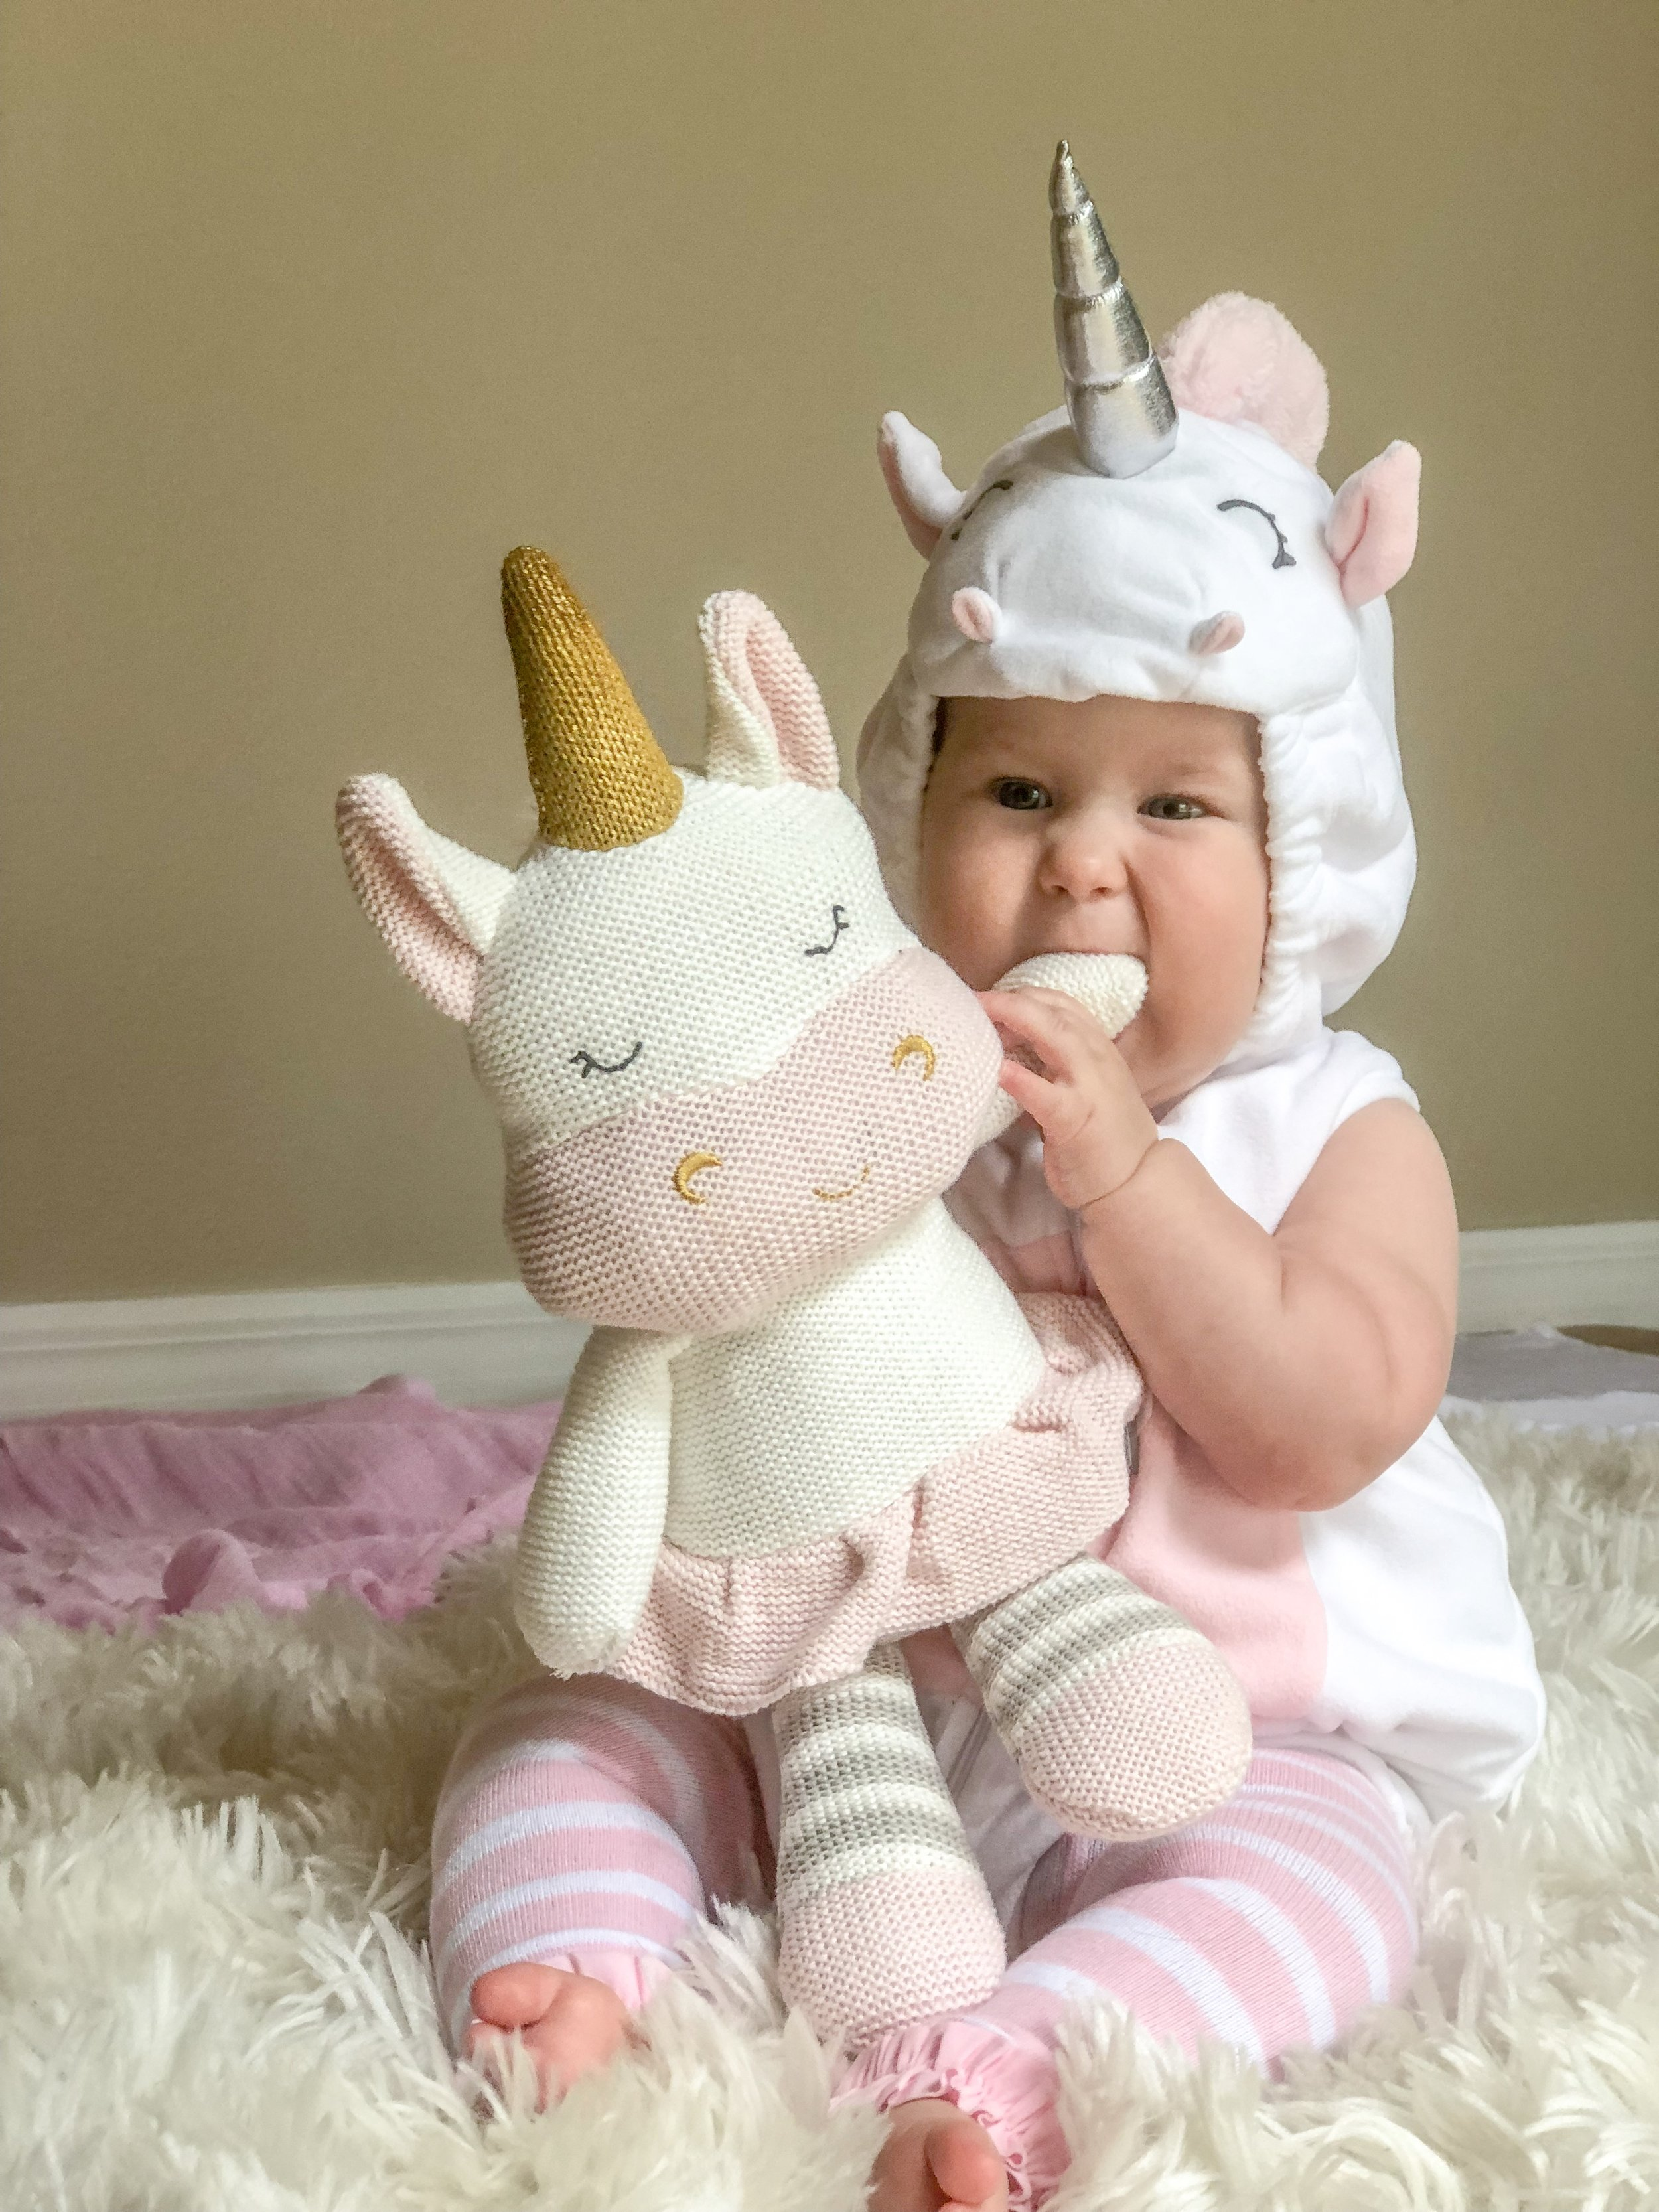 So cute, right?! This was one of my daughters Halloween Costumes in 2018! Of course she had to have two costumes for her very first Halloween! She is about 8 months old here!